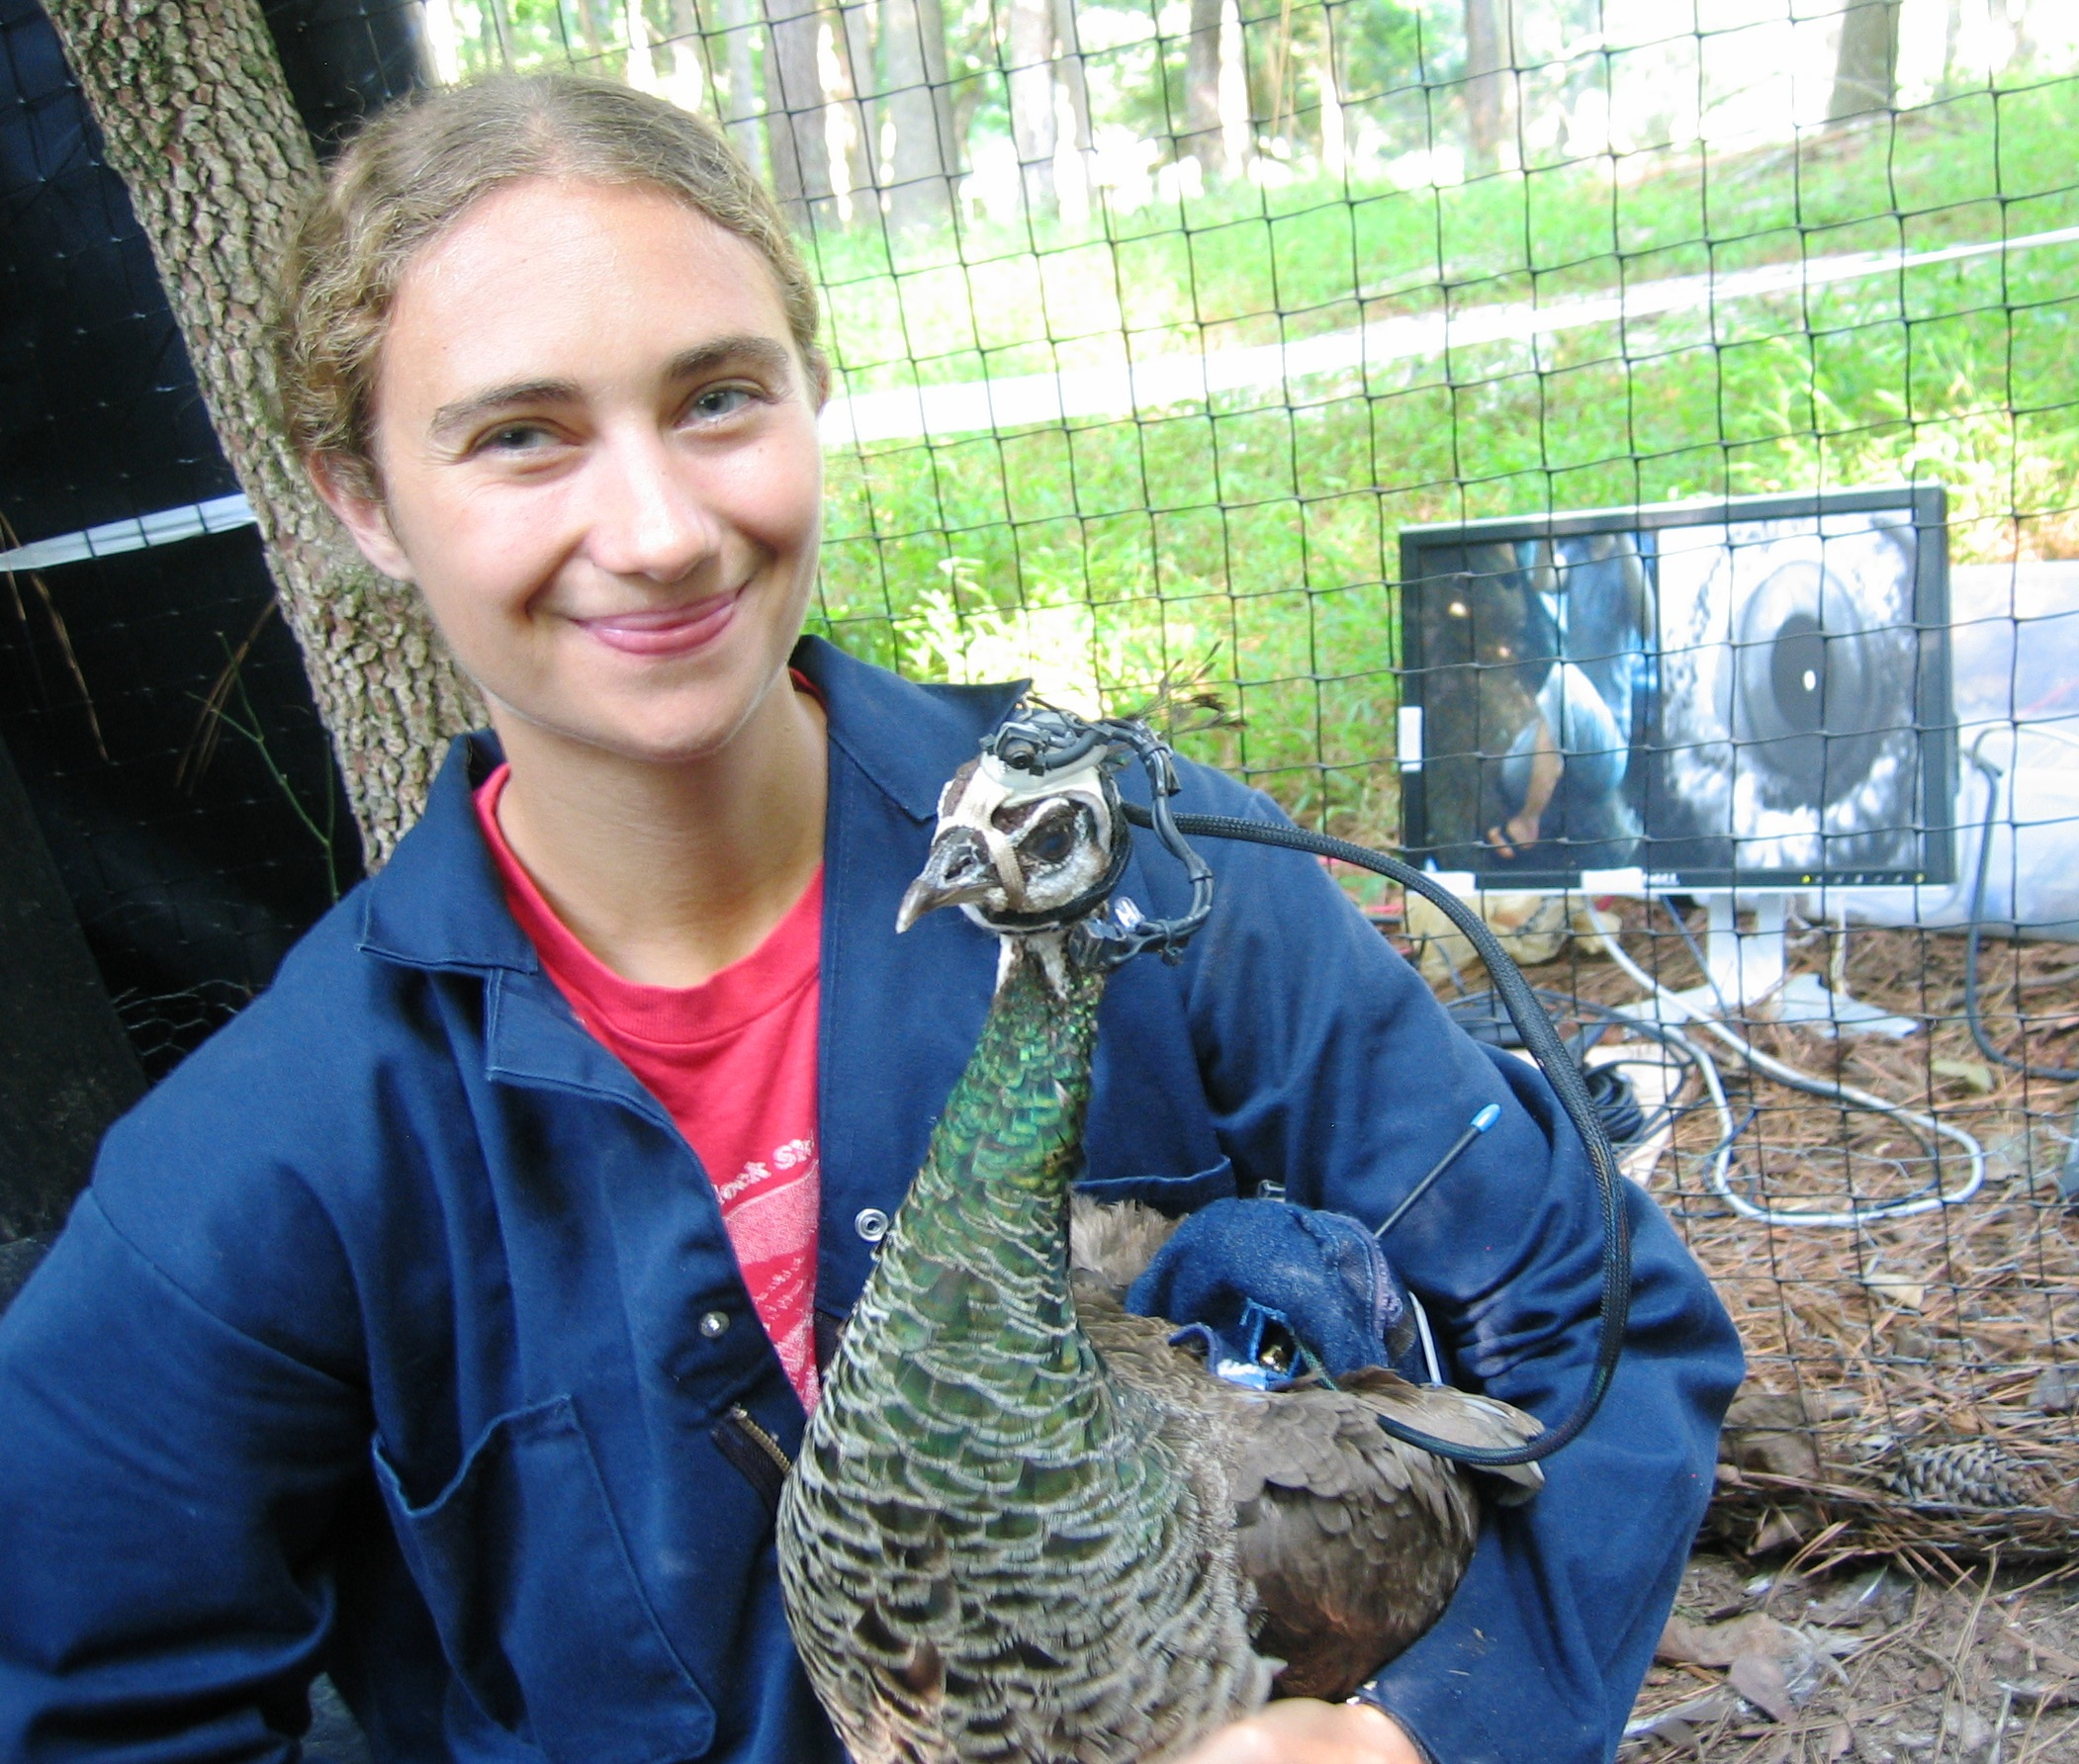 Jessica Yorzinski with her peahen eye-tracker